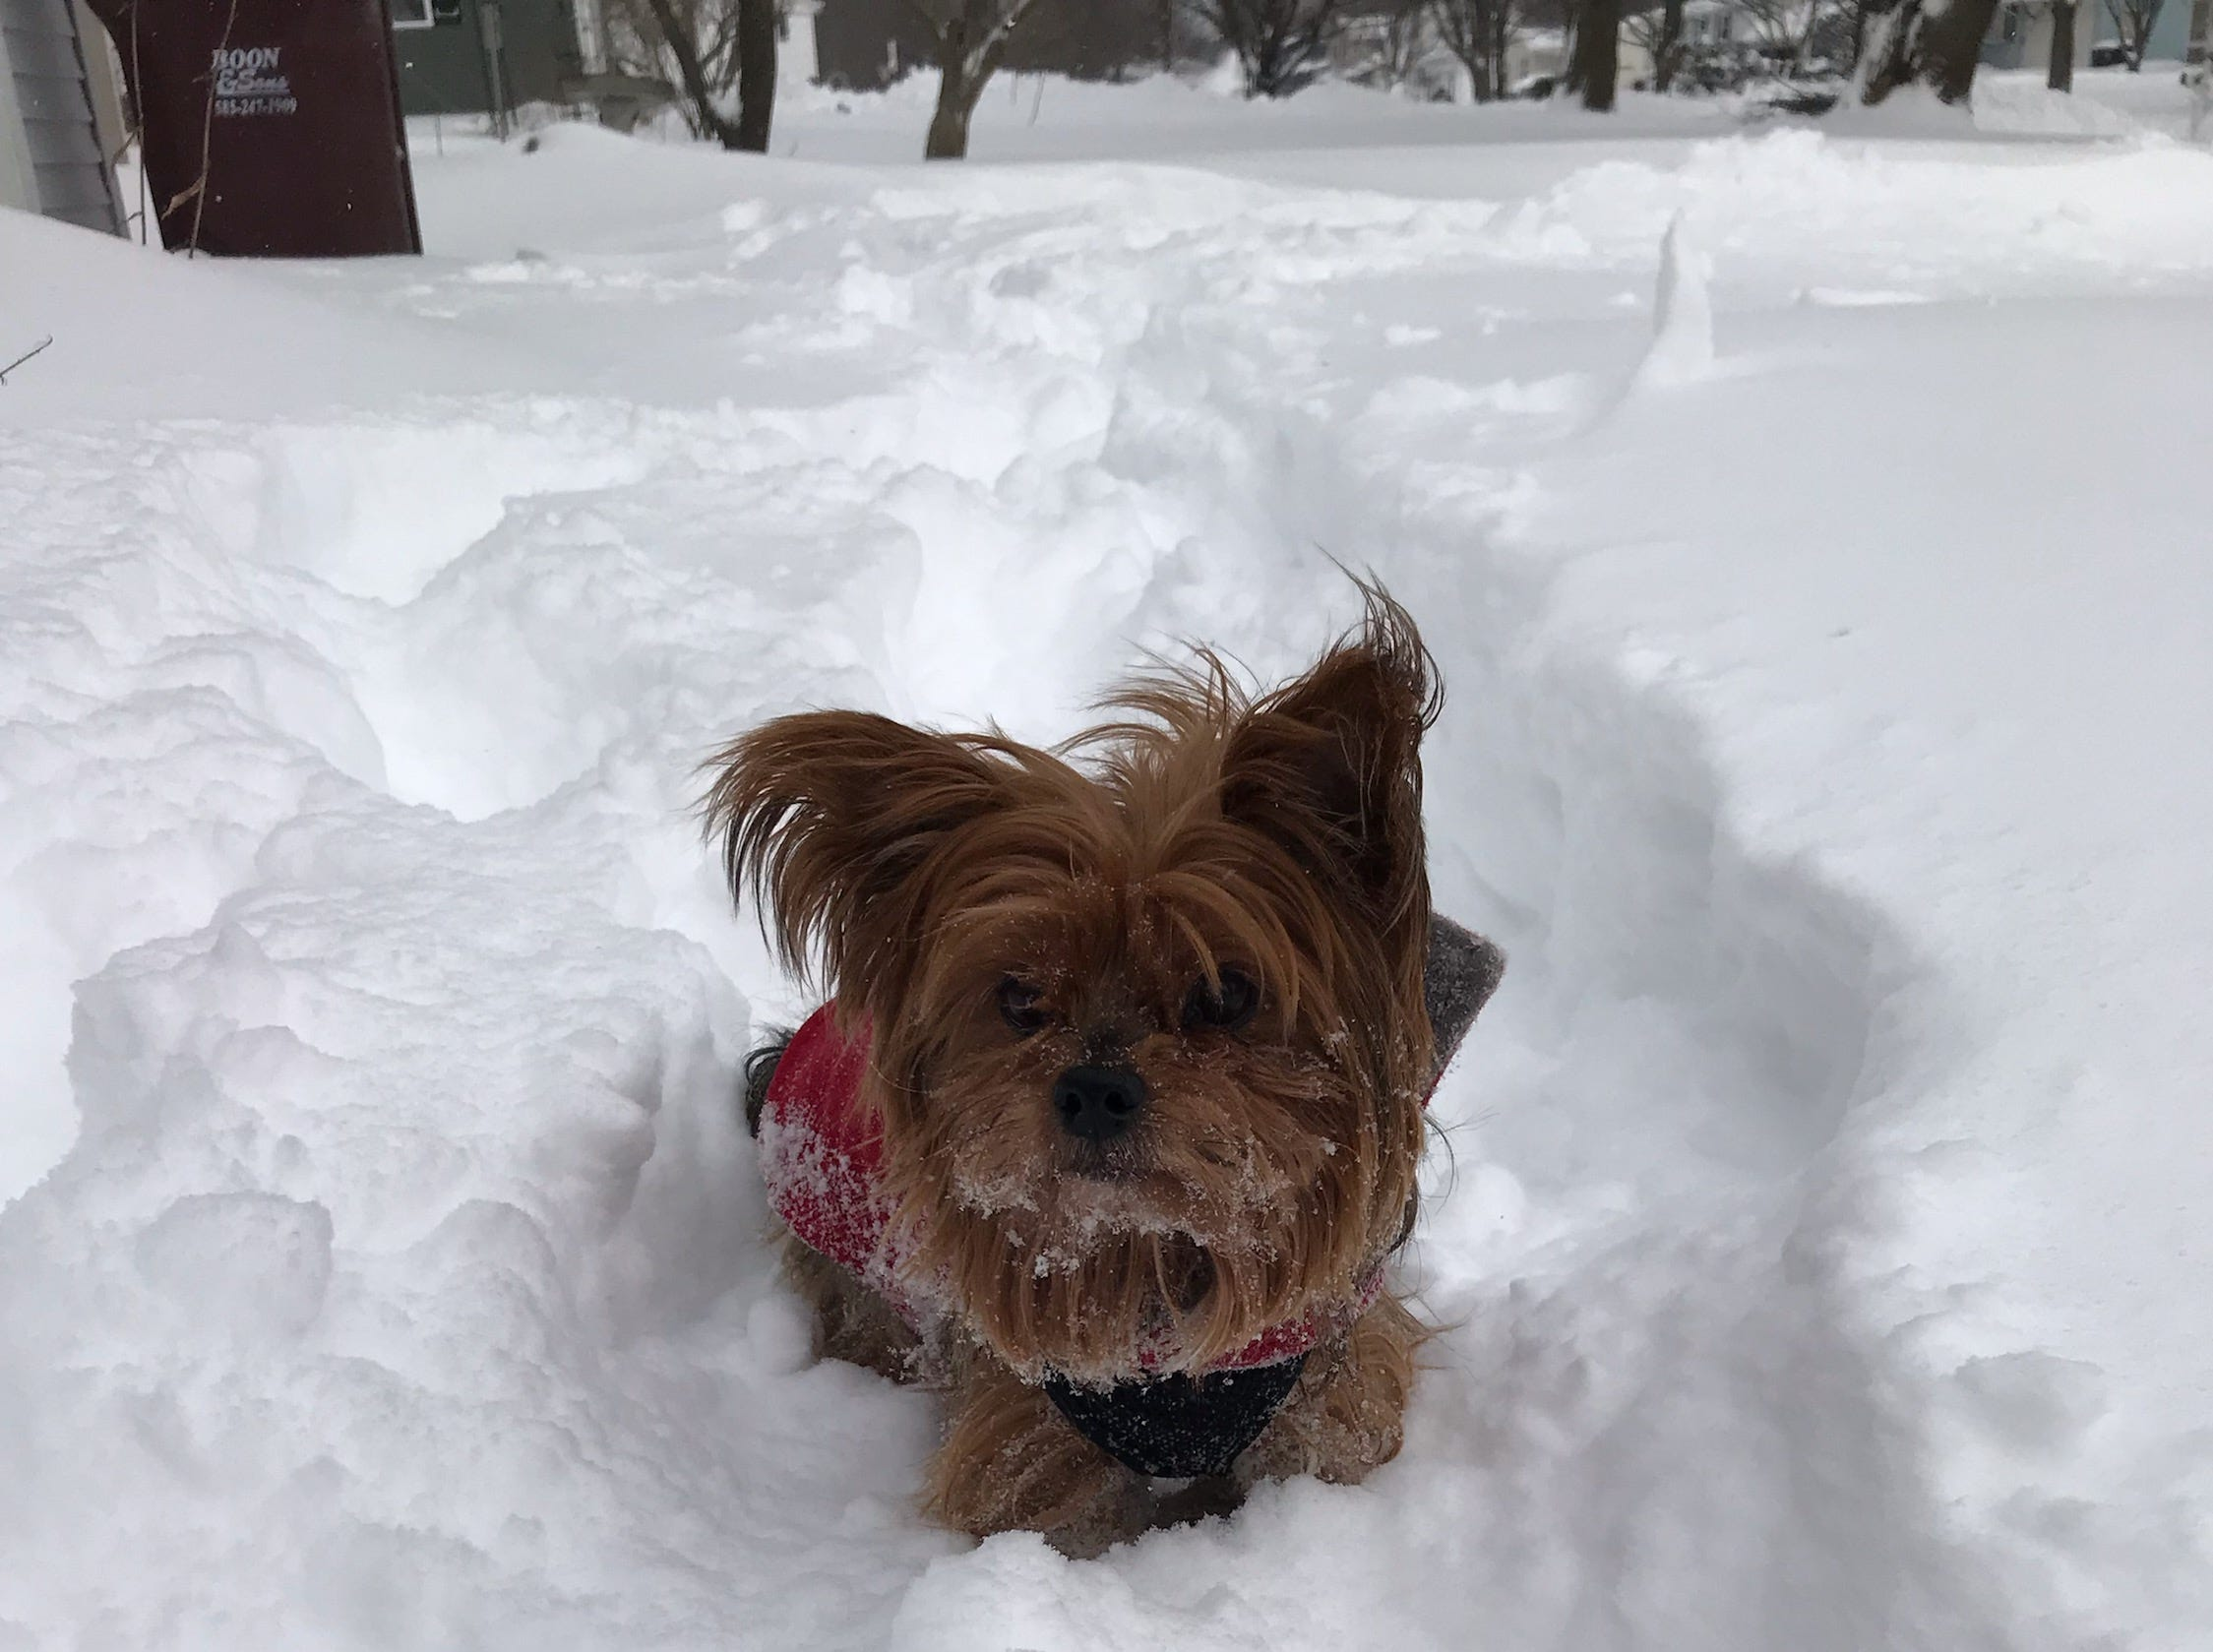 Bogie the Yorkshire terrier. Photo by Eric Gustavson.